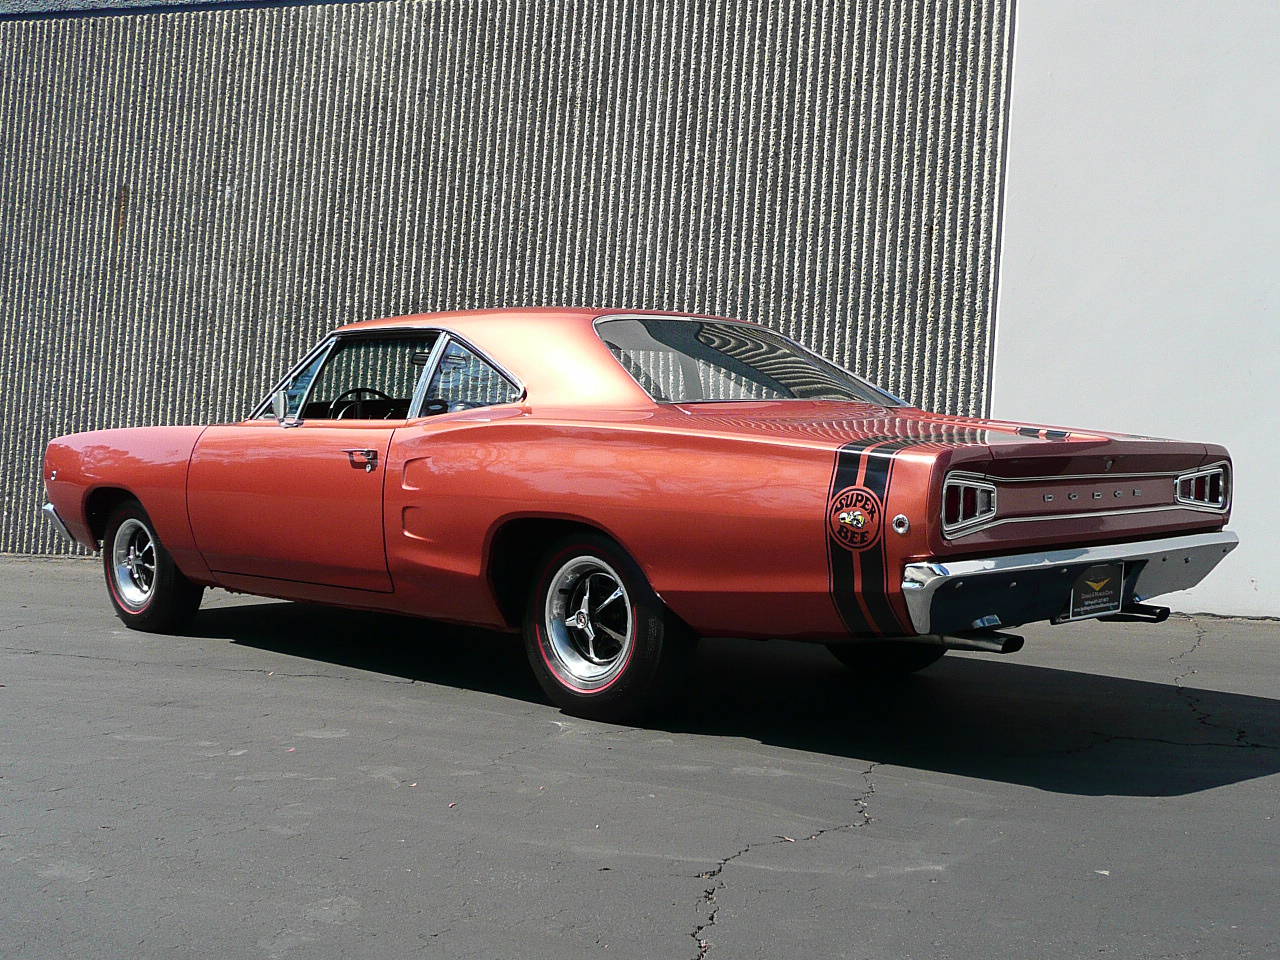 1969 Dodge Super Bee Wiring Diagram Detailed Schematics 1970 Coronet Plymouth 440 Six Pack Charger